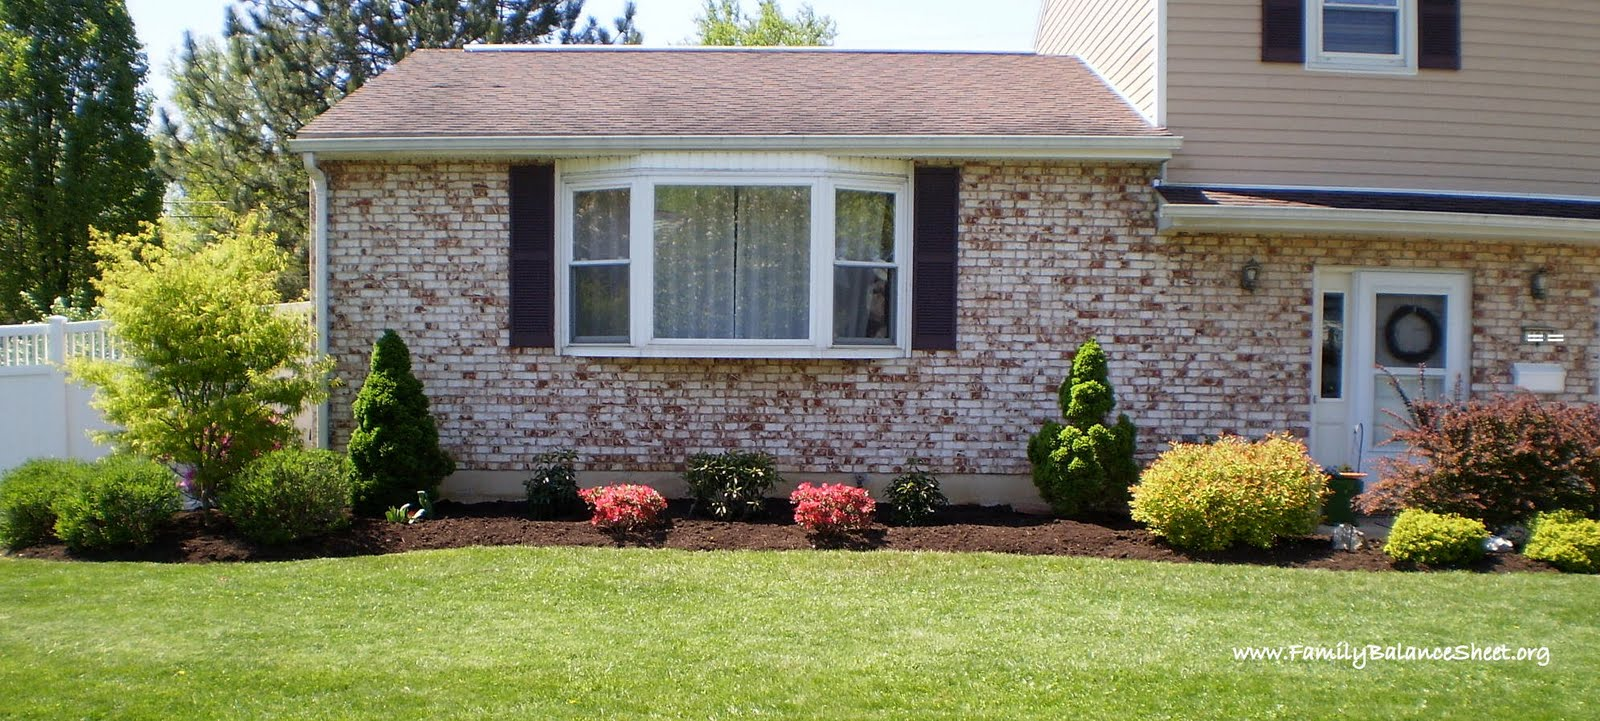 15 tips to help you design your front yard save money too